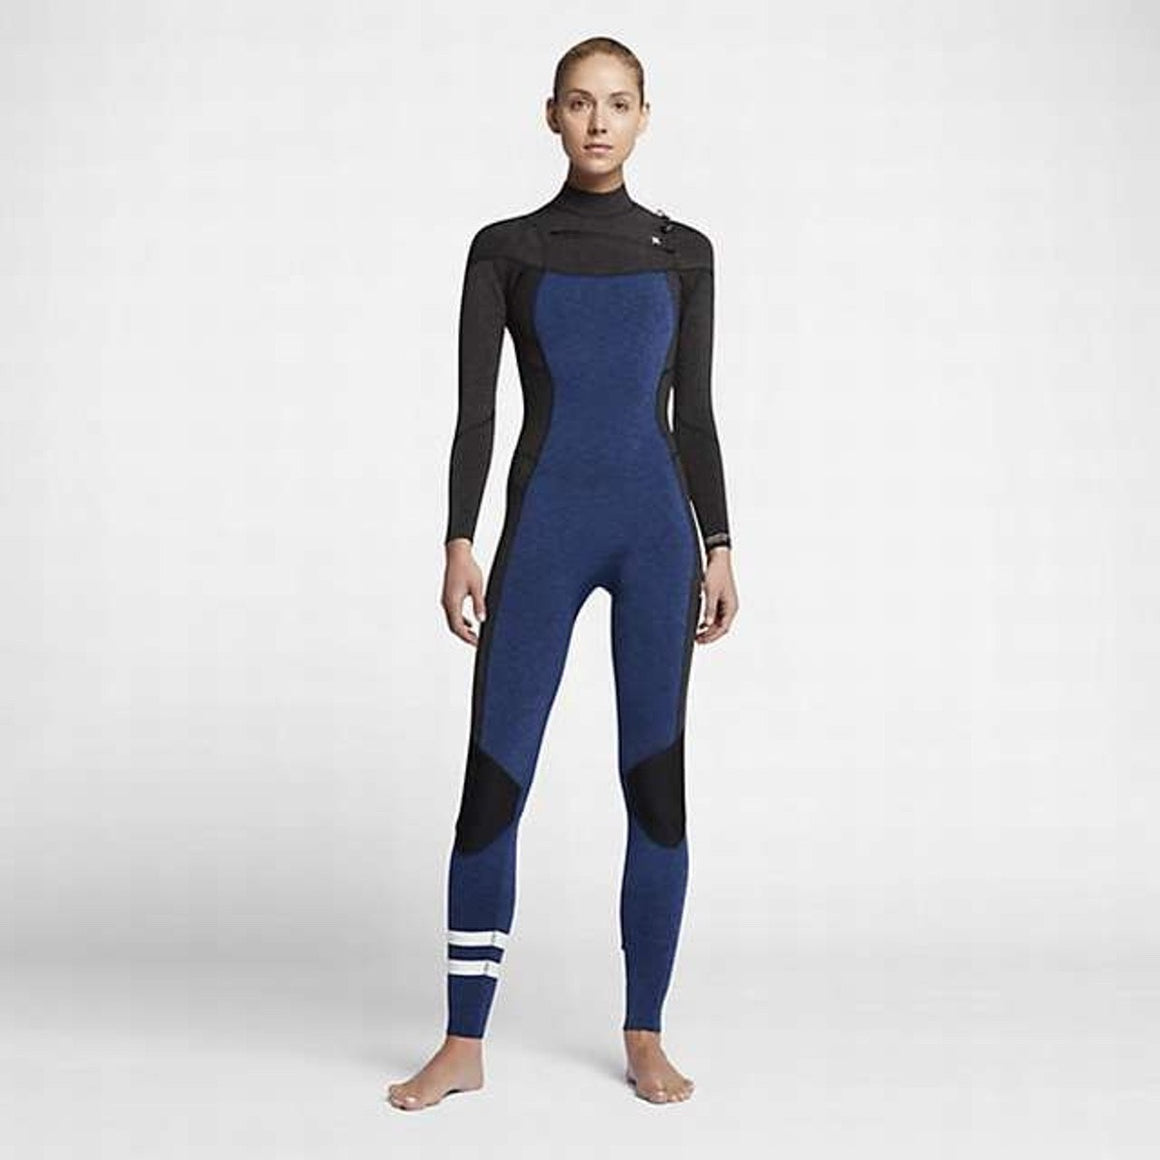 Hurley Women's Wetsuit - Advantage PLUS 3/2